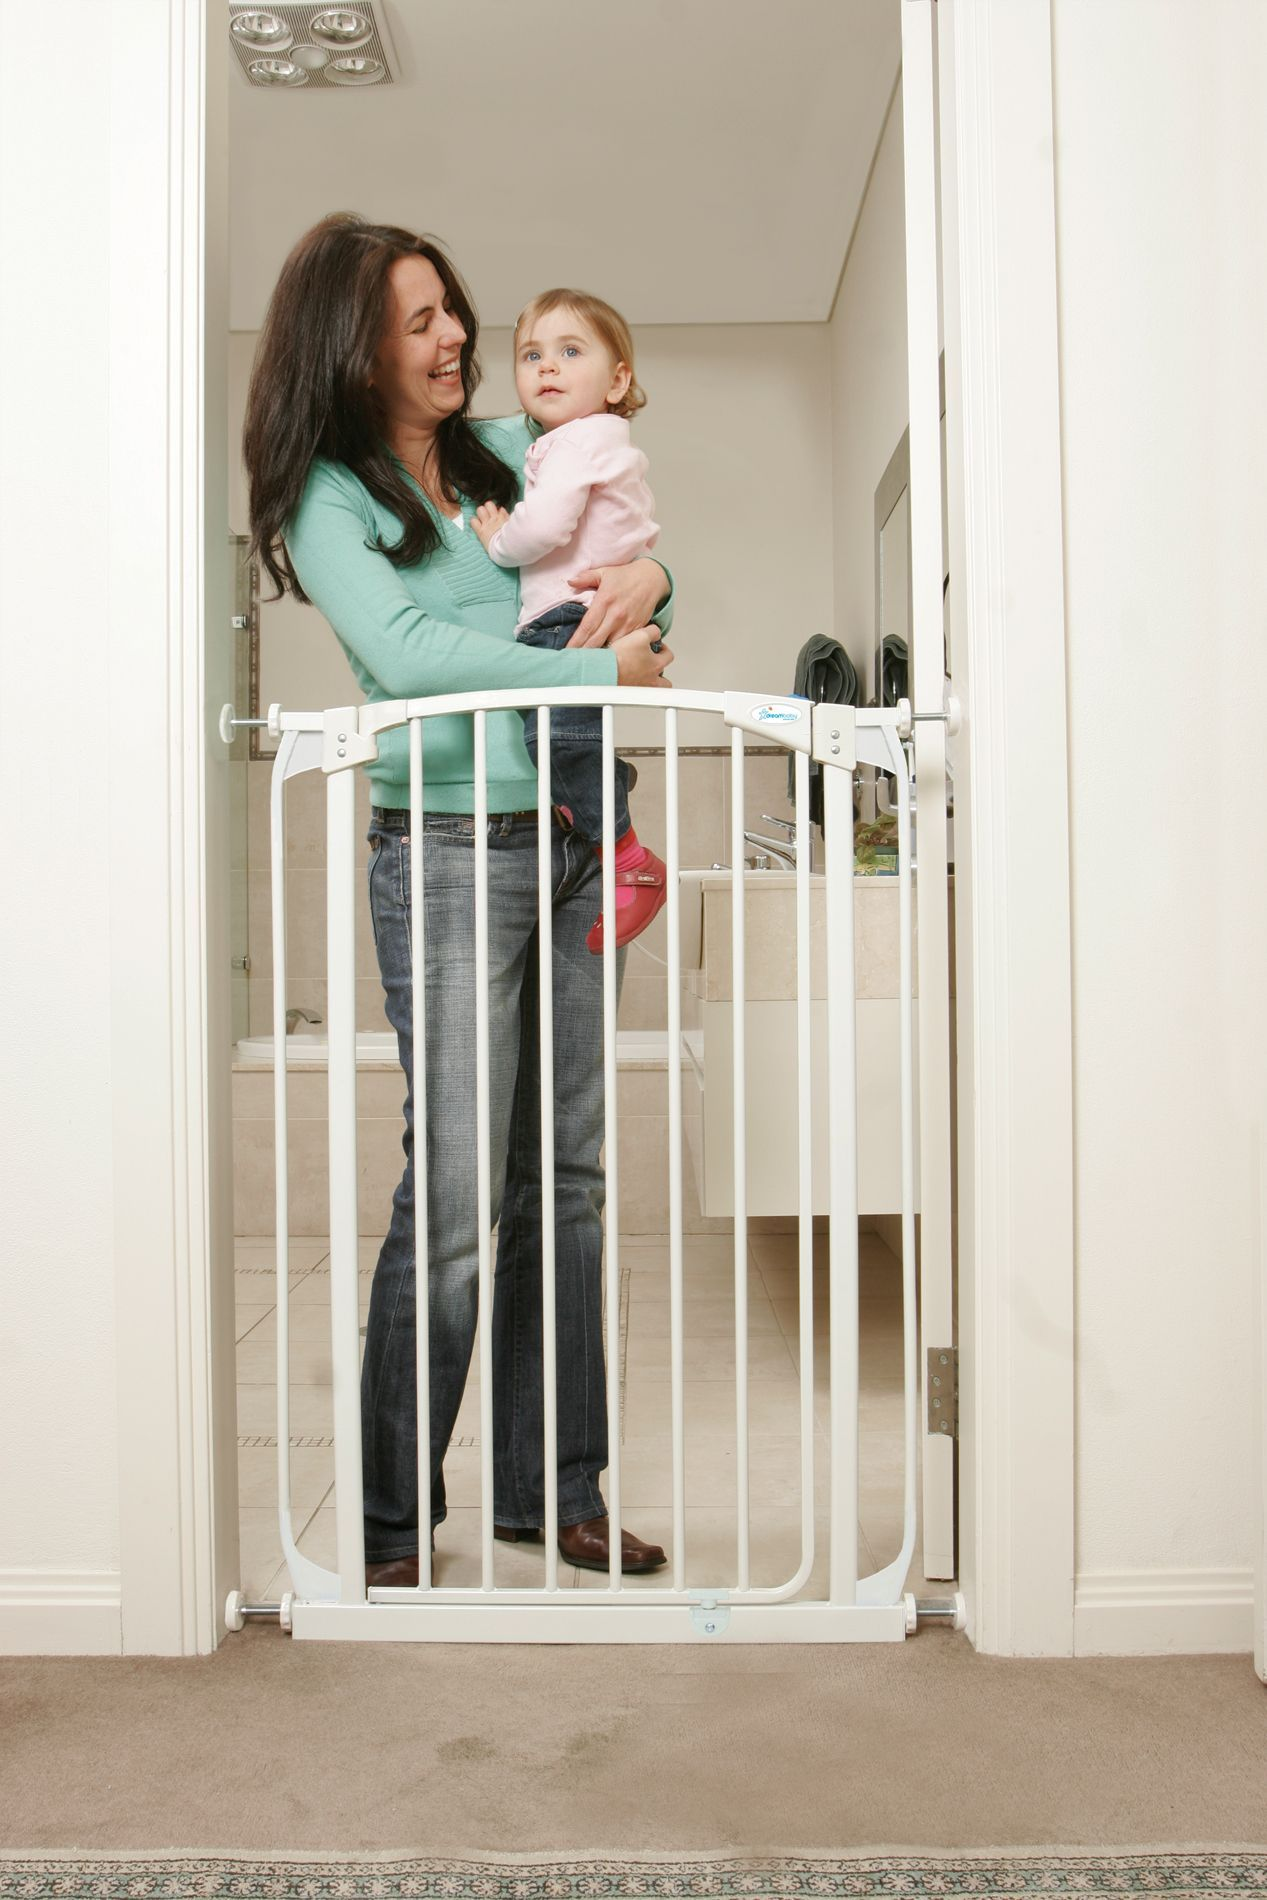 Pin by Heidi Blount on For the Home Pet safety gate